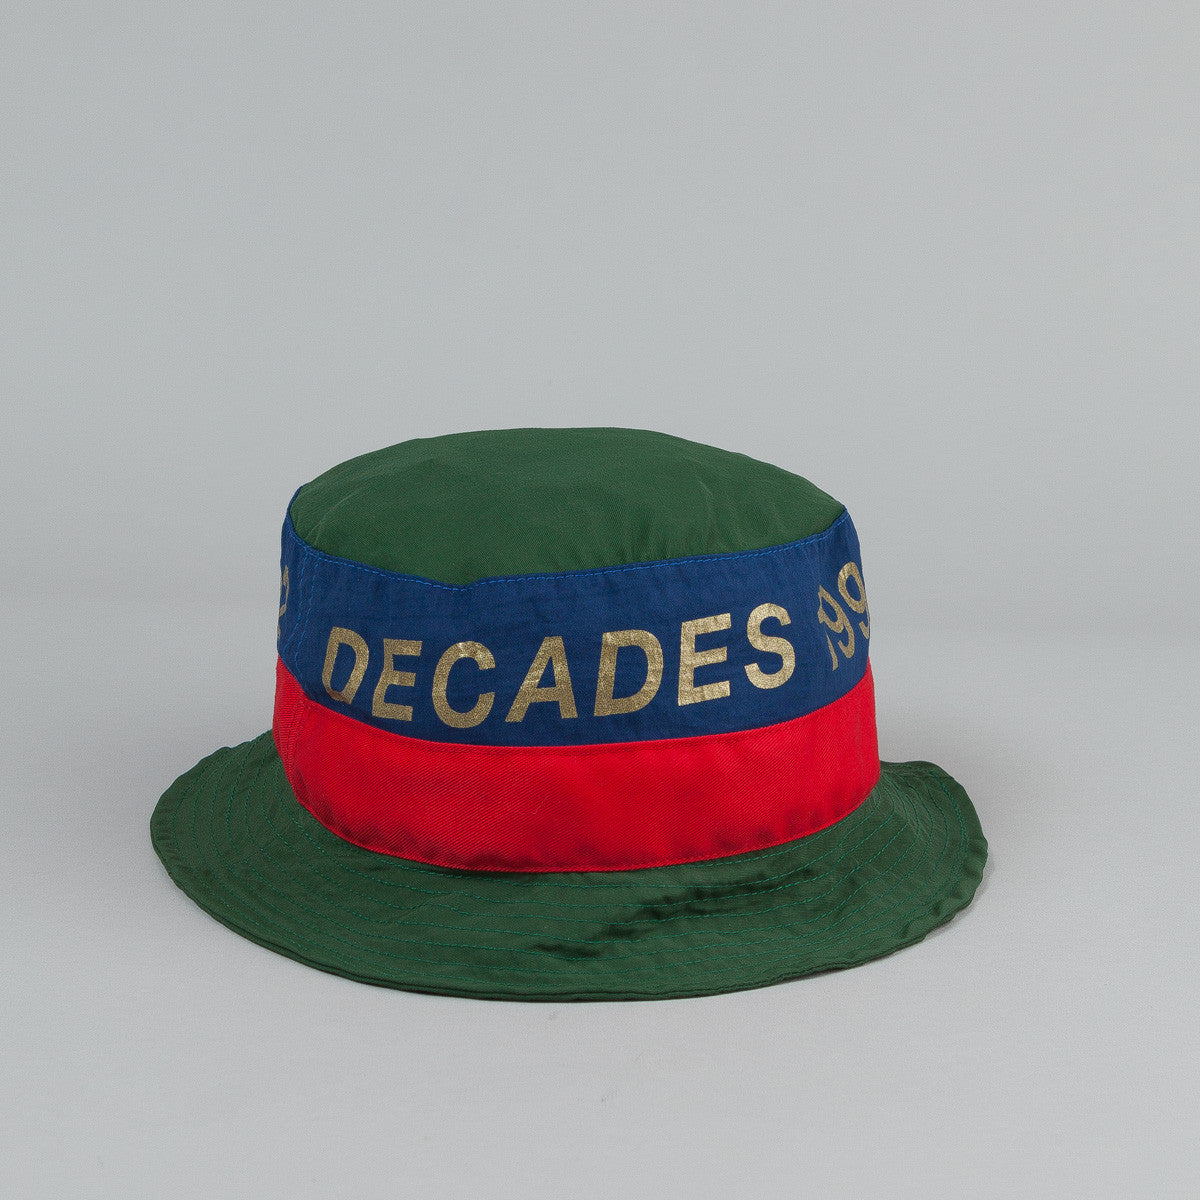 The Decades Barcelona Bucket Hat - Green / Navy / Red Nylon